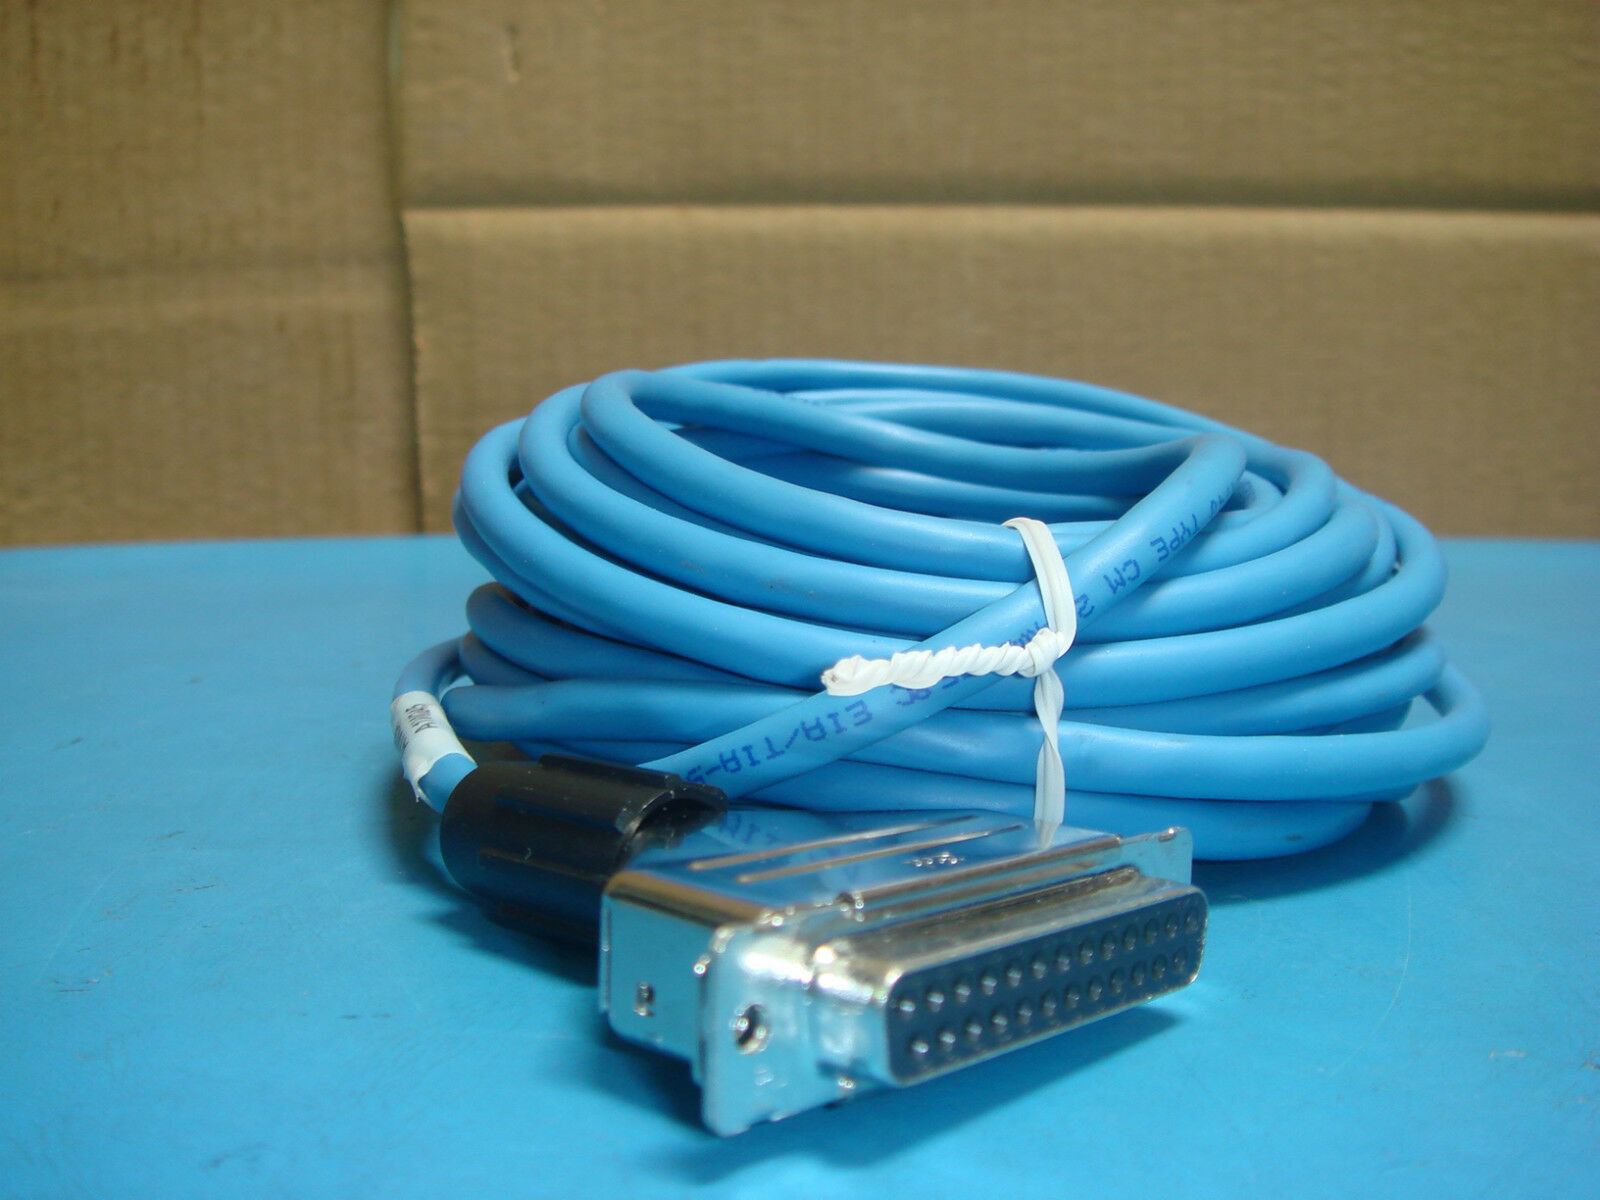 10 Blue Cat 5e Ether Net Patch Cables With 25 P 3m Female Connector Cords Outdoor Cat5e Pre Owned Lowest Price